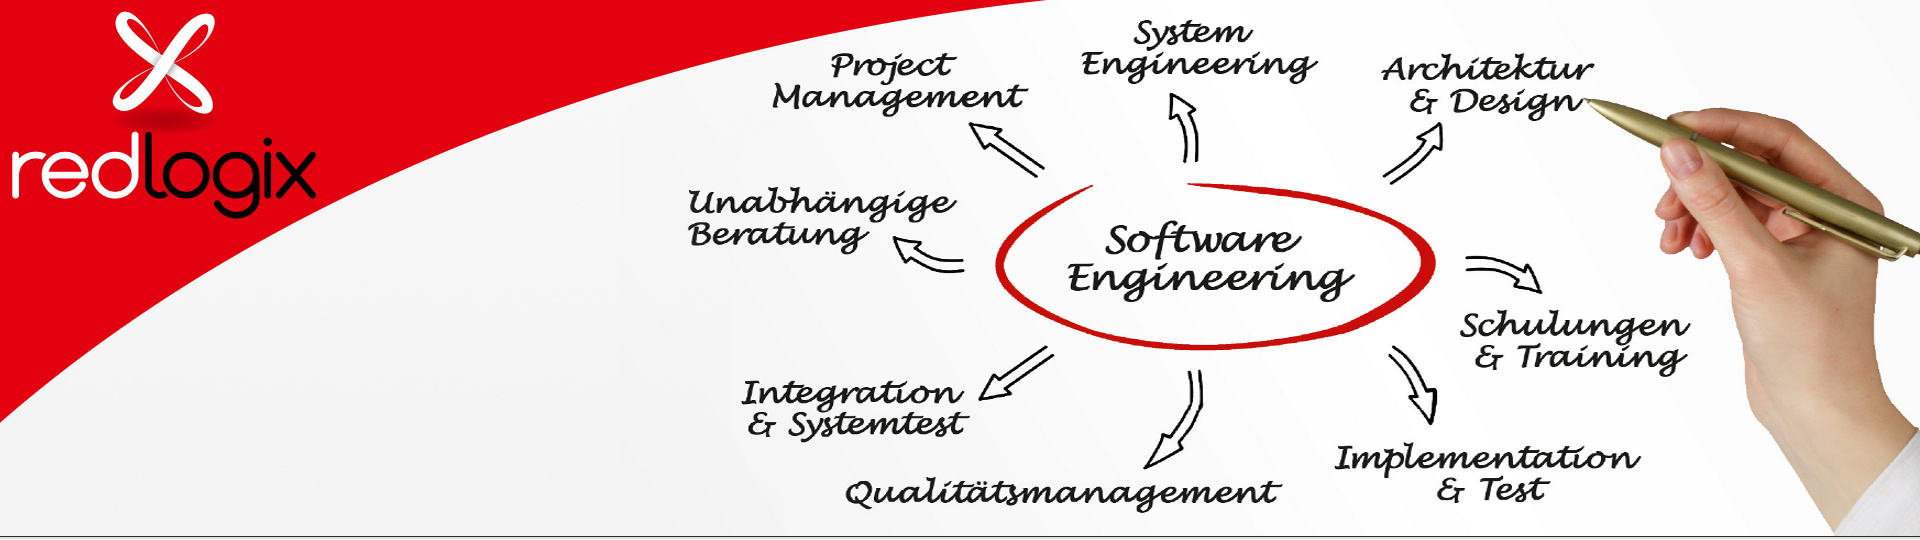 Illustration redlogix Software Engineering